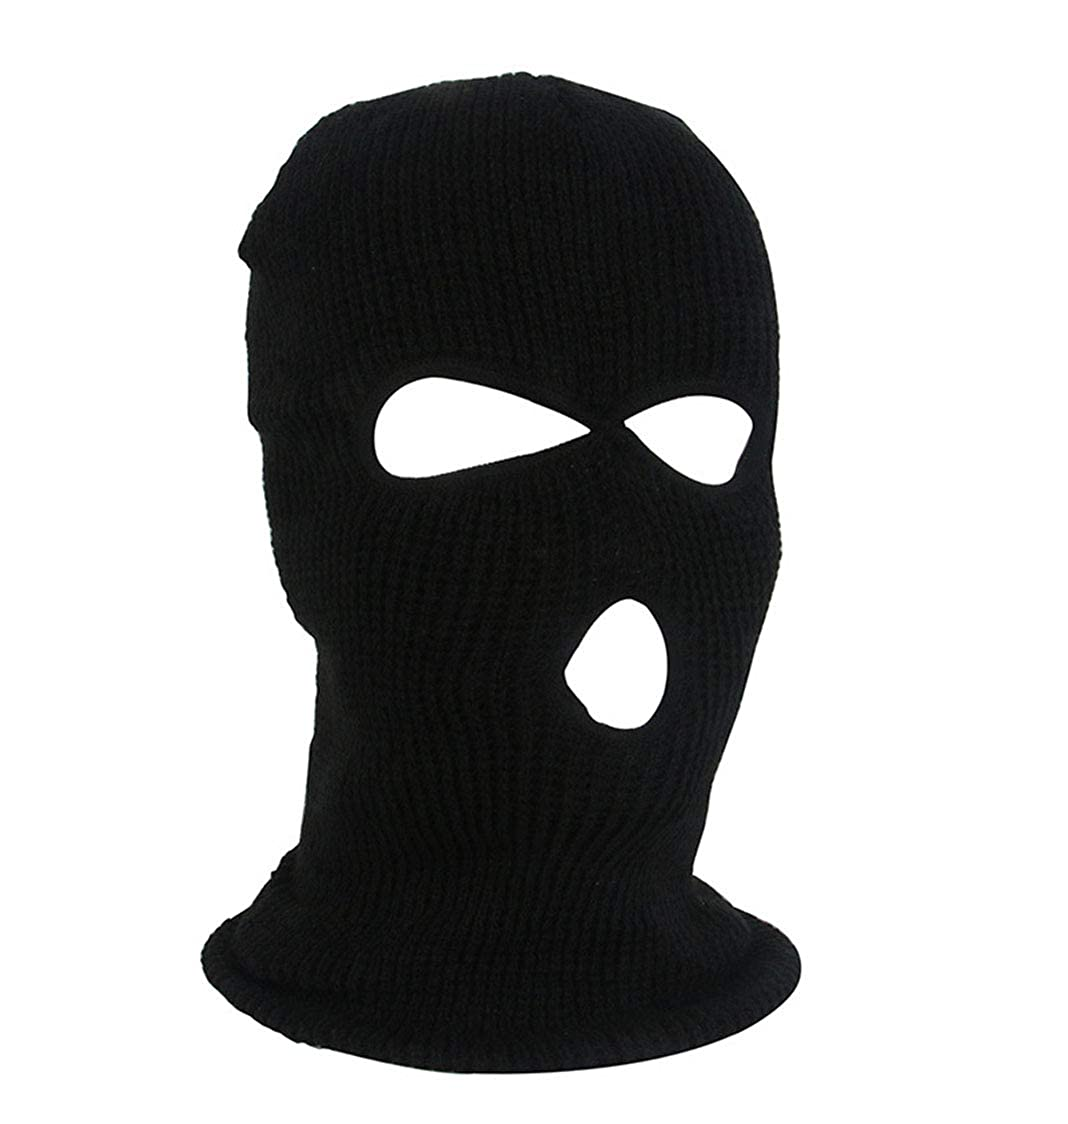 EYIIYE 2 Holes Knit Full Face Cover Ski Mask Adult Winter Balaclava Beanie for Outdoor Sport